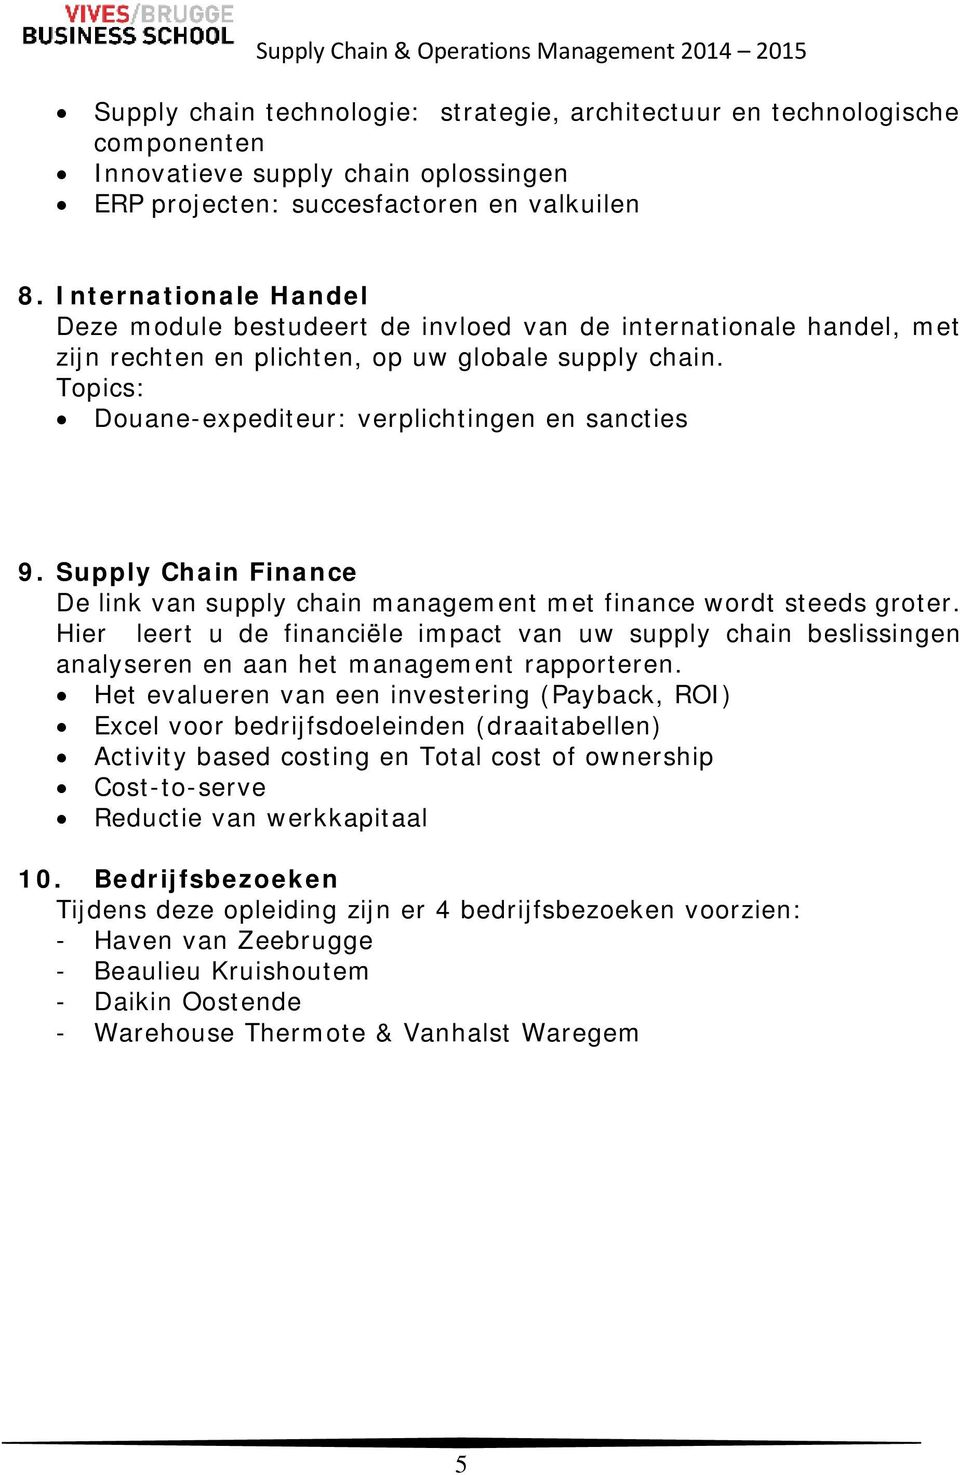 Supply Chain Finance De link van supply chain management met finance wordt steeds groter.